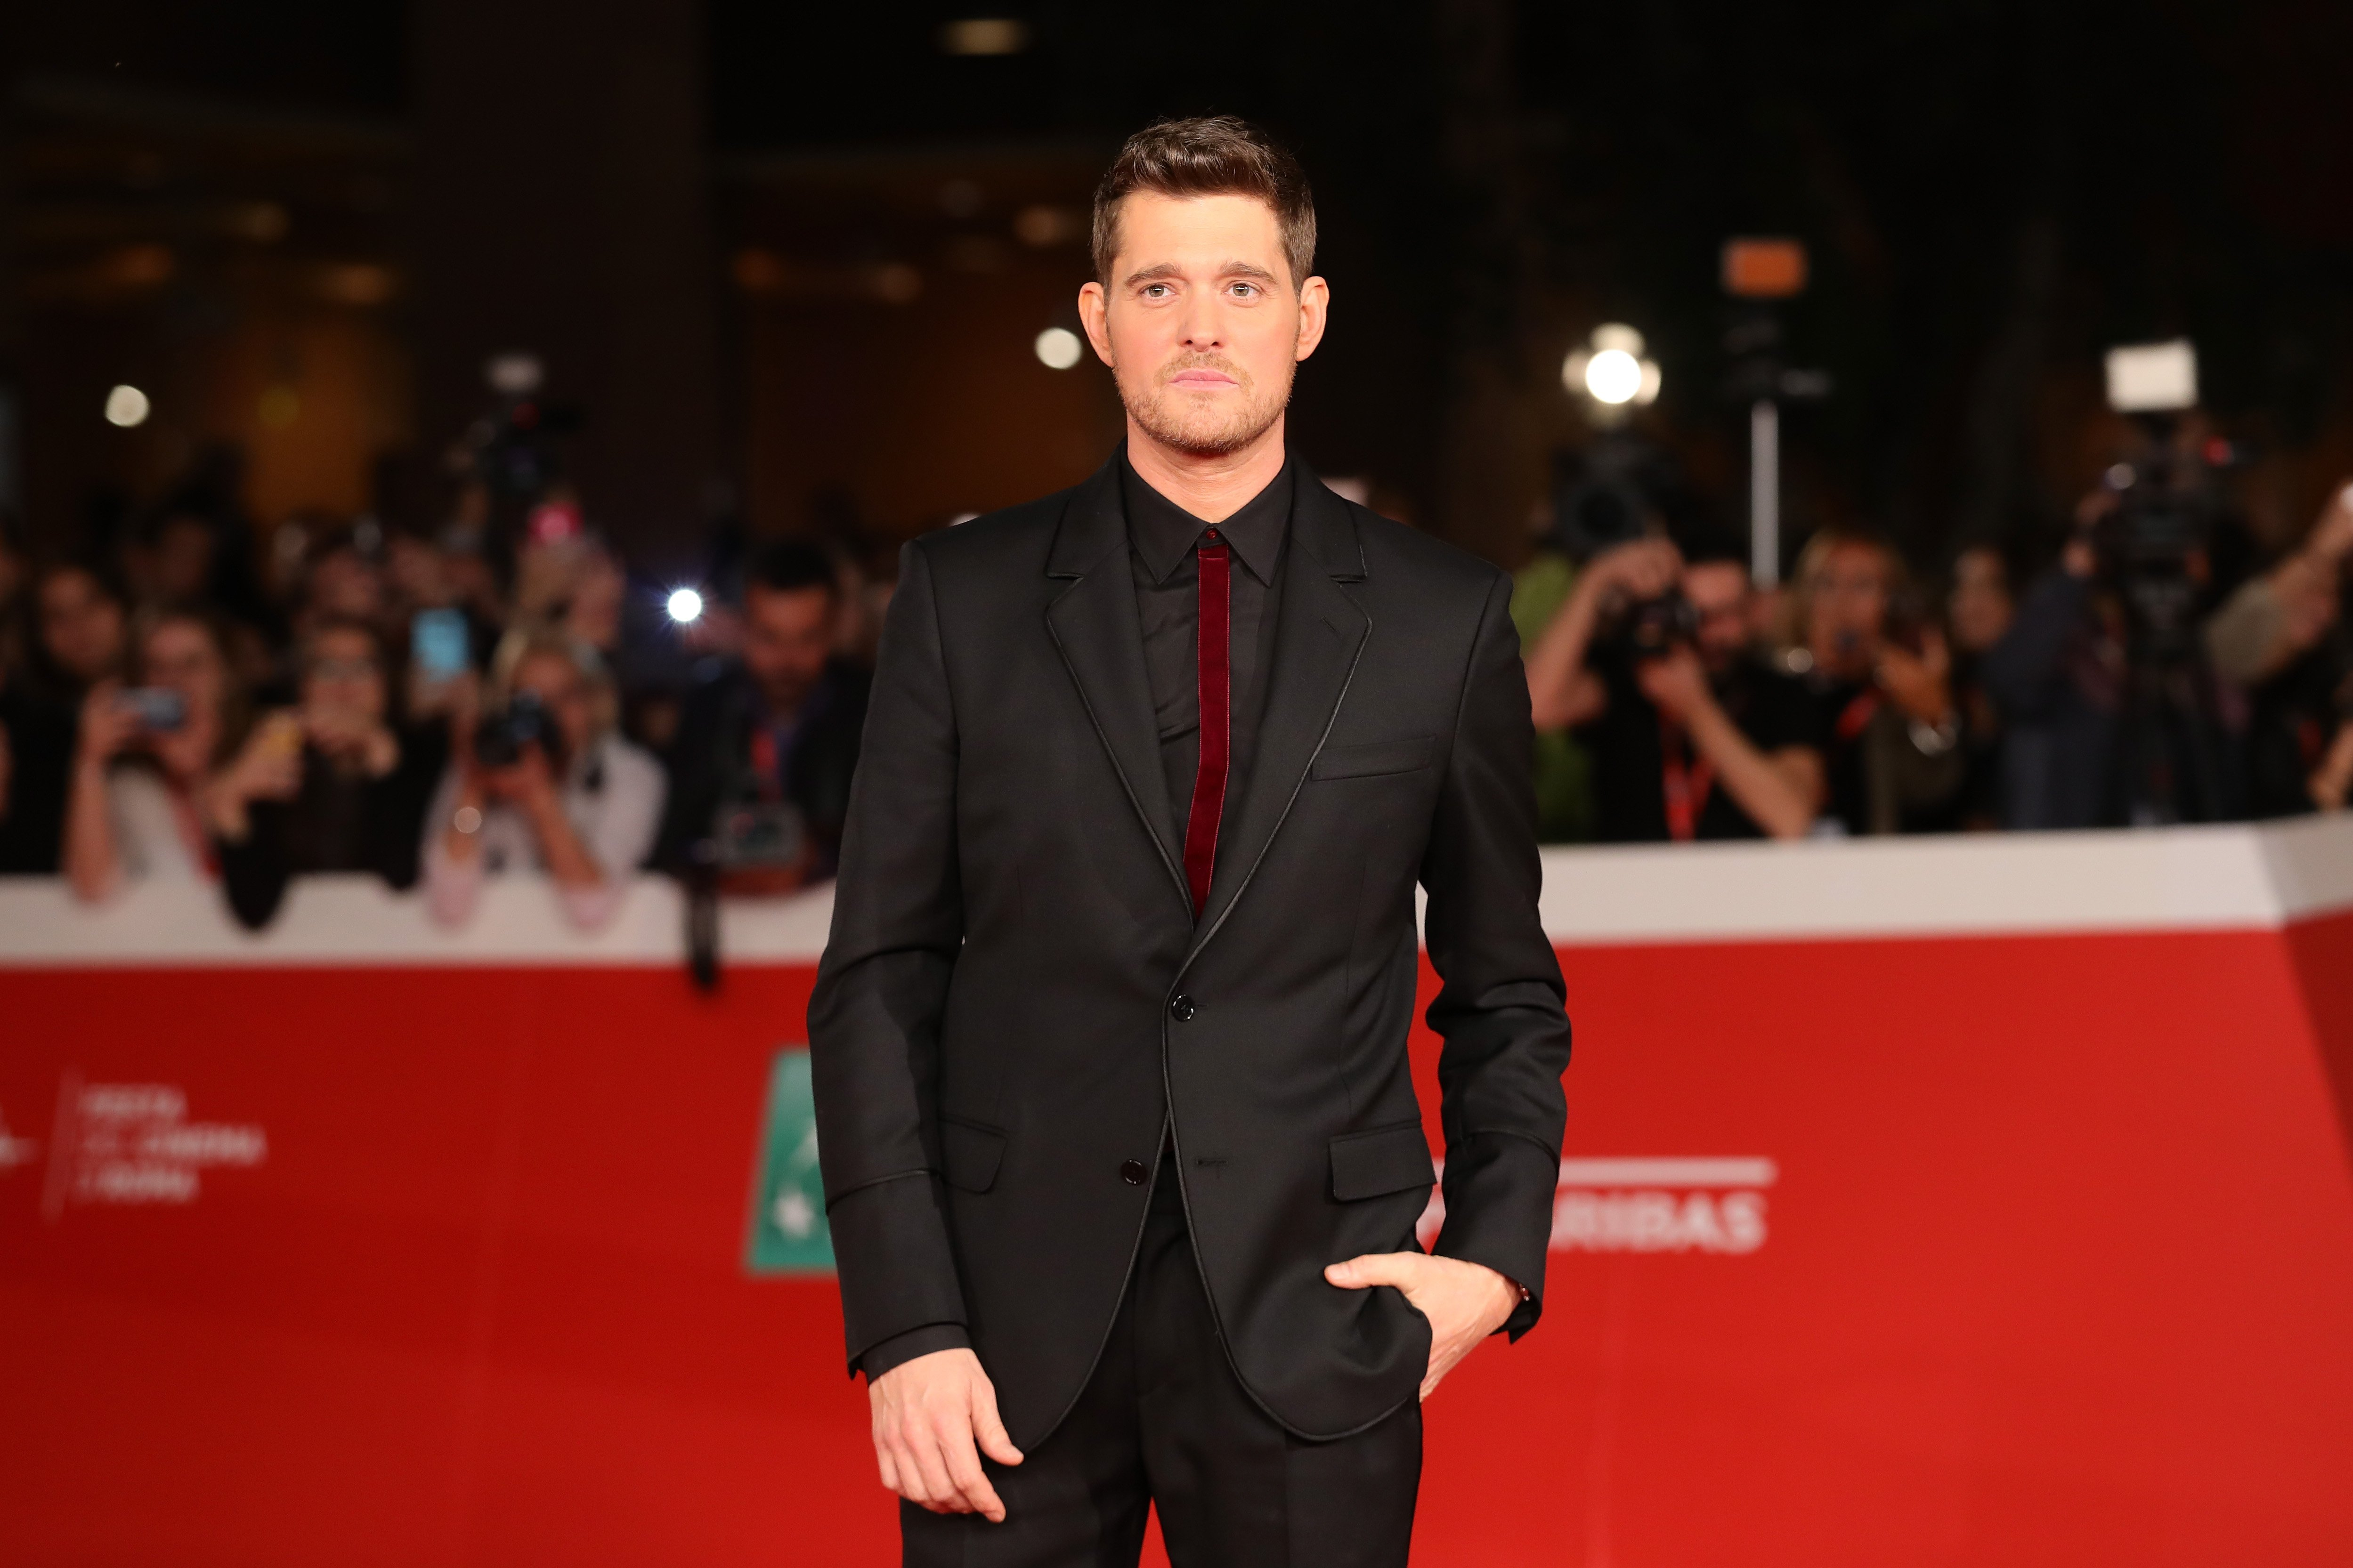 Michael Buble walks a red carpet for 'Tour Stop 148' during the 11th Rome Film Festival at Auditorium Parco Della Musica on October 14, 2016 in Rome, Italy | Photo: Getty Images